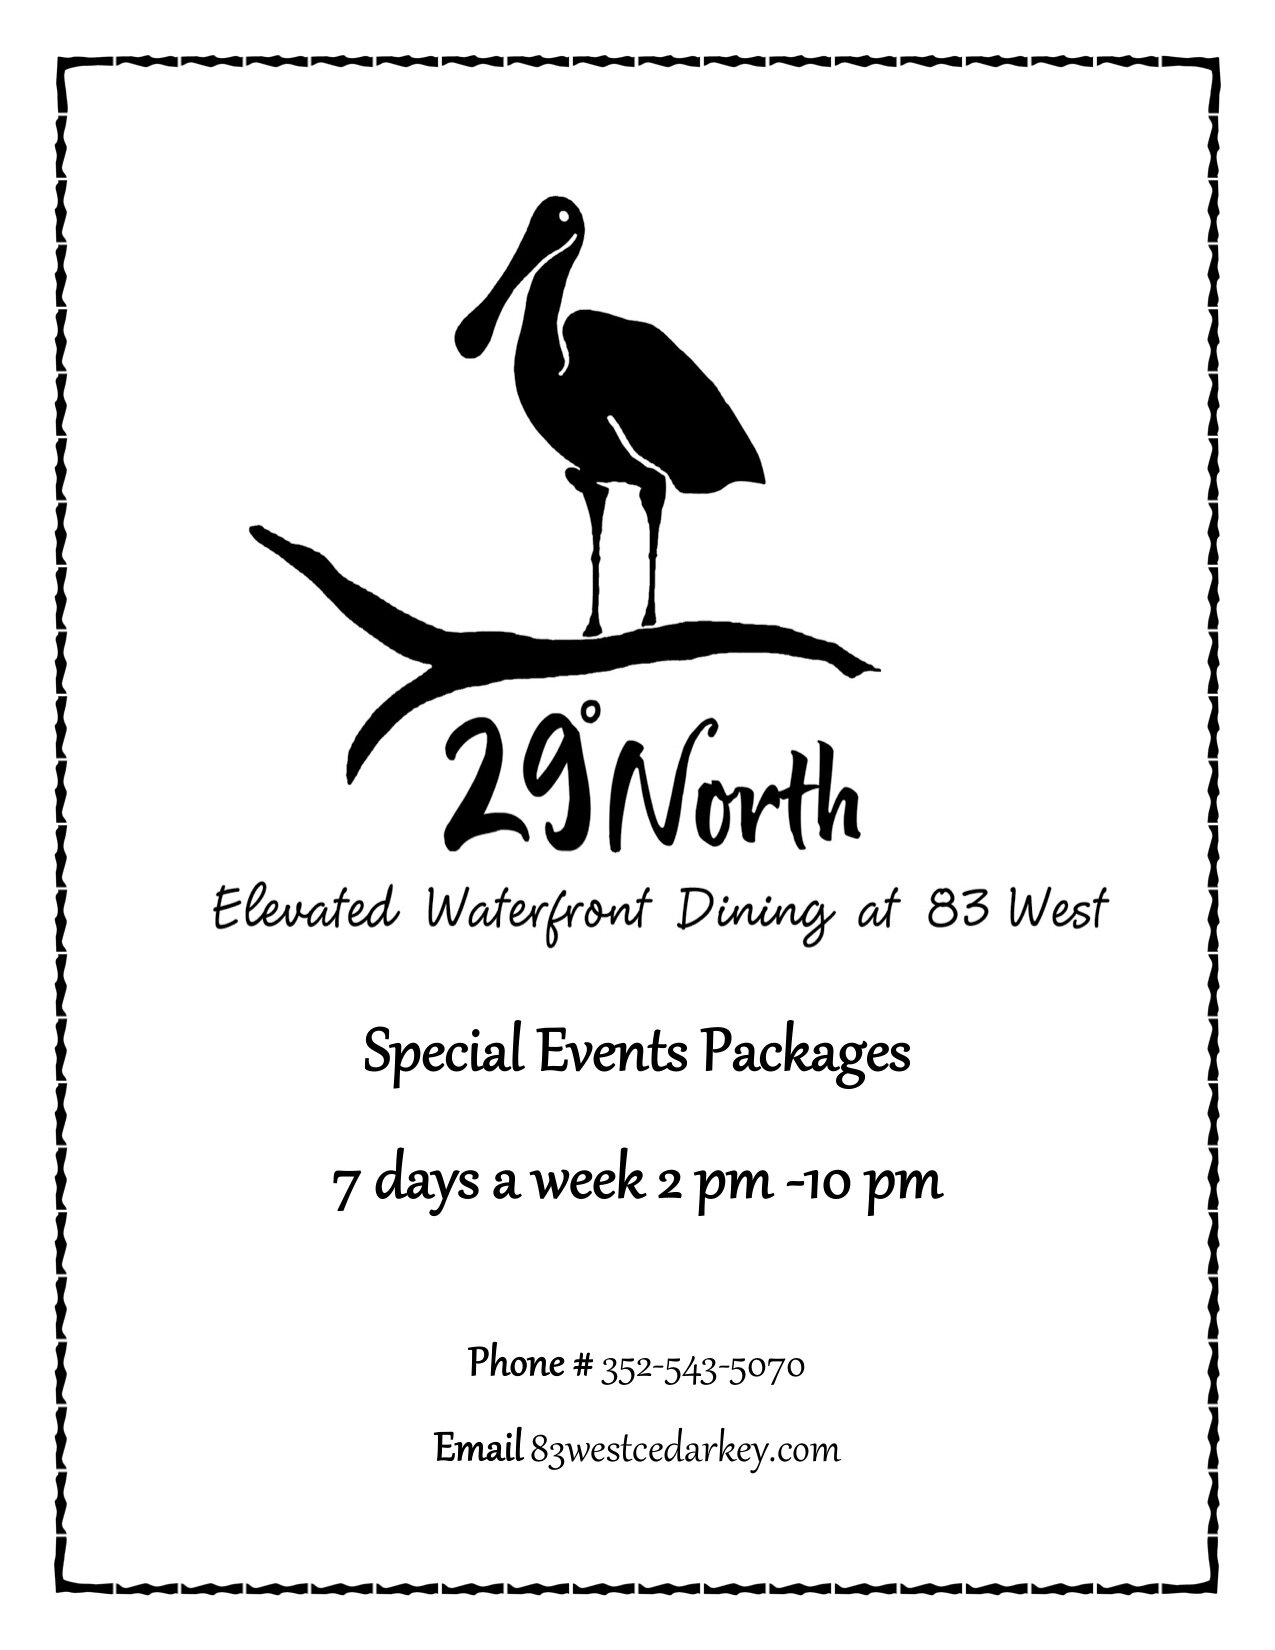 83 West Special Events Packages.jpg